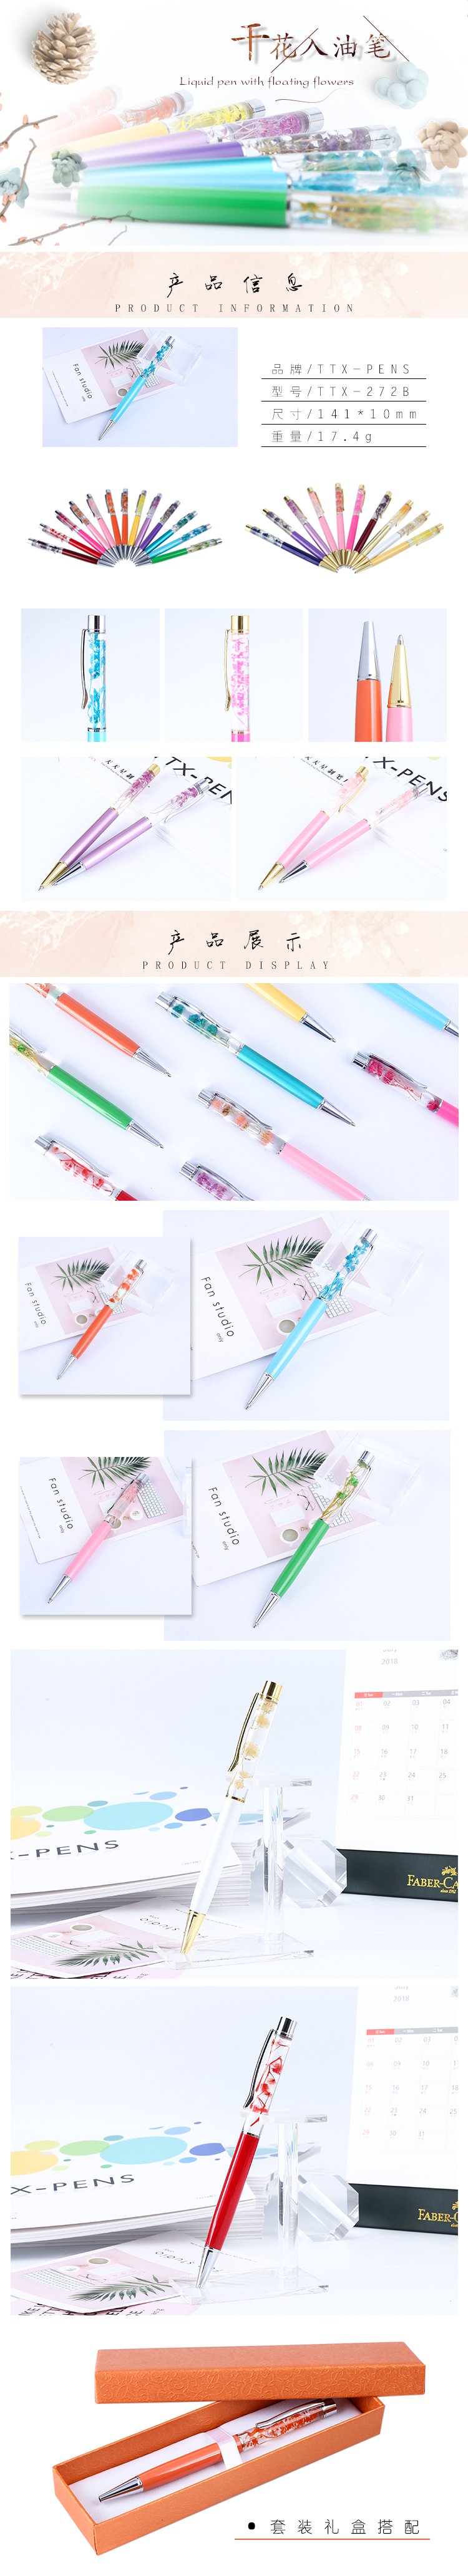 2019 Floating Oil Crystal Metal Ball Pen with beauty Glitter Sparkle for Wedding Gift